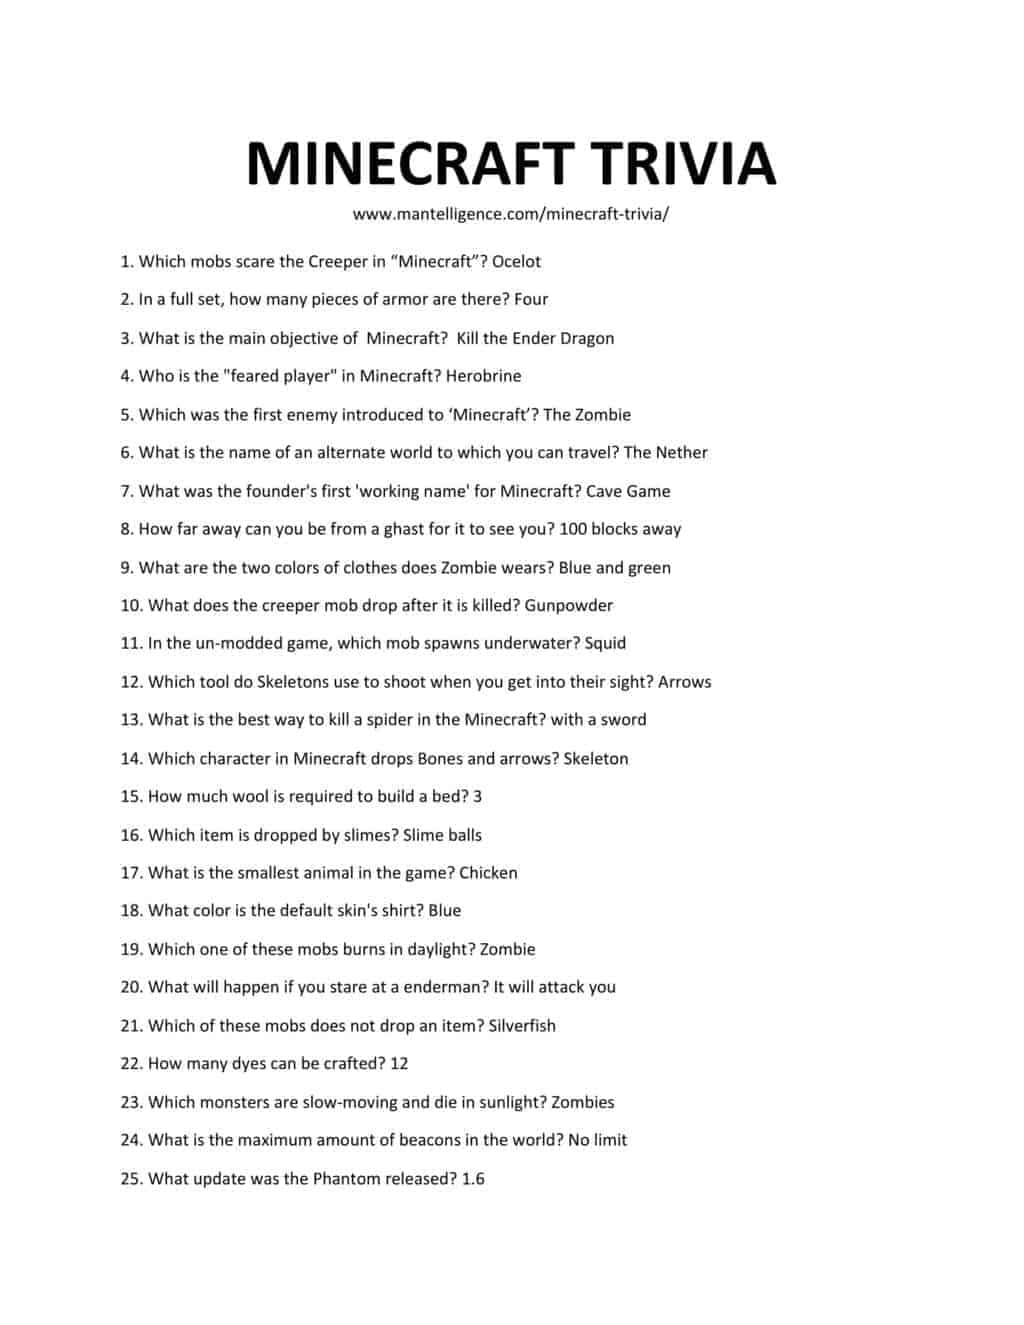 Downloadable and printable jpg/pdf list of Minecraft trivia